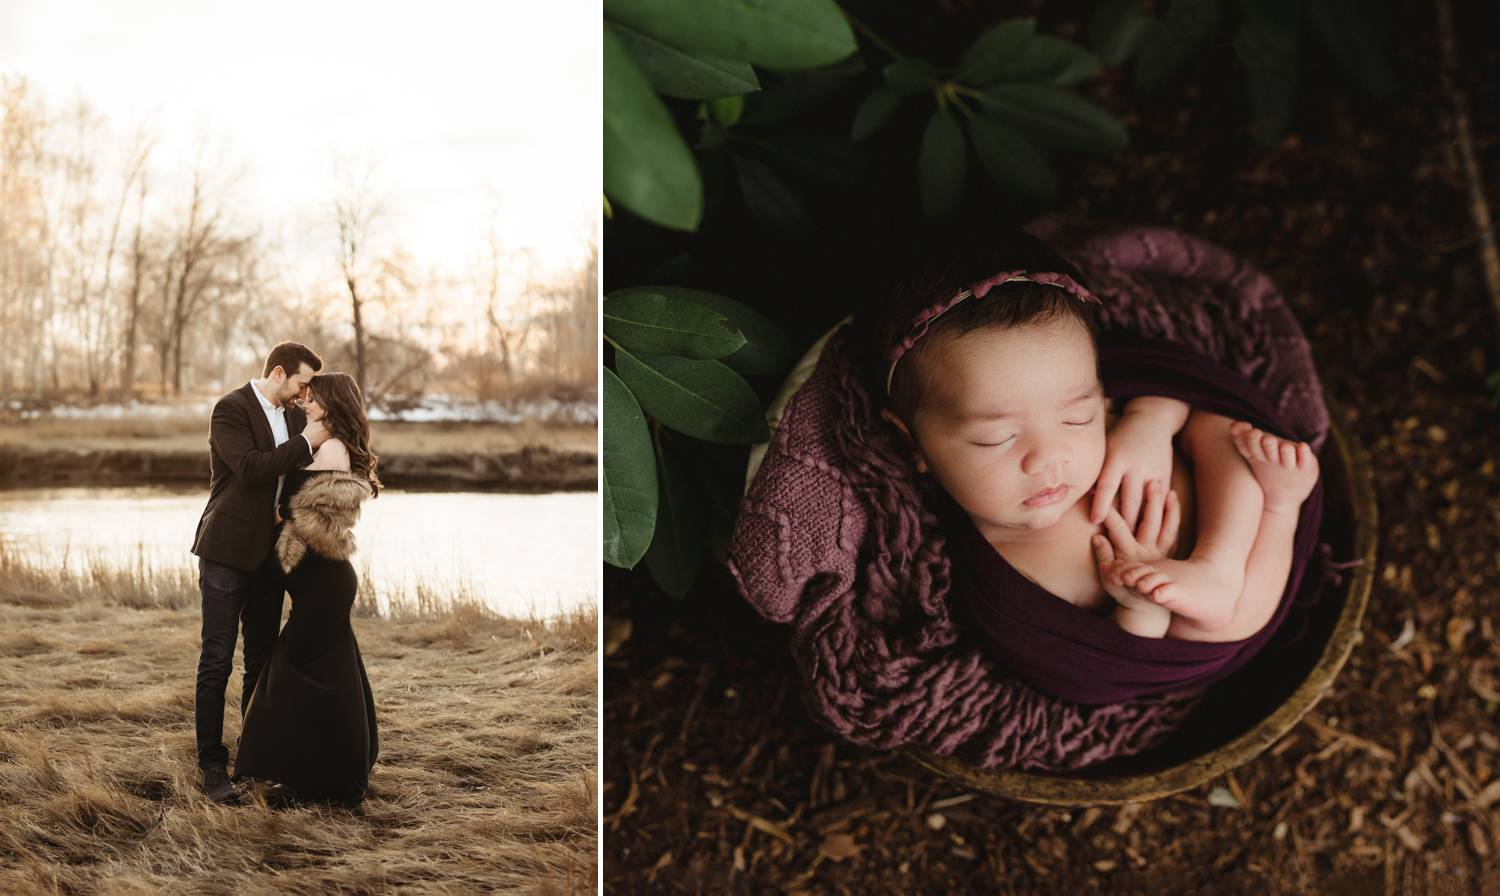 Portrait of a couple by a lake. Portrait of a baby in a basket.